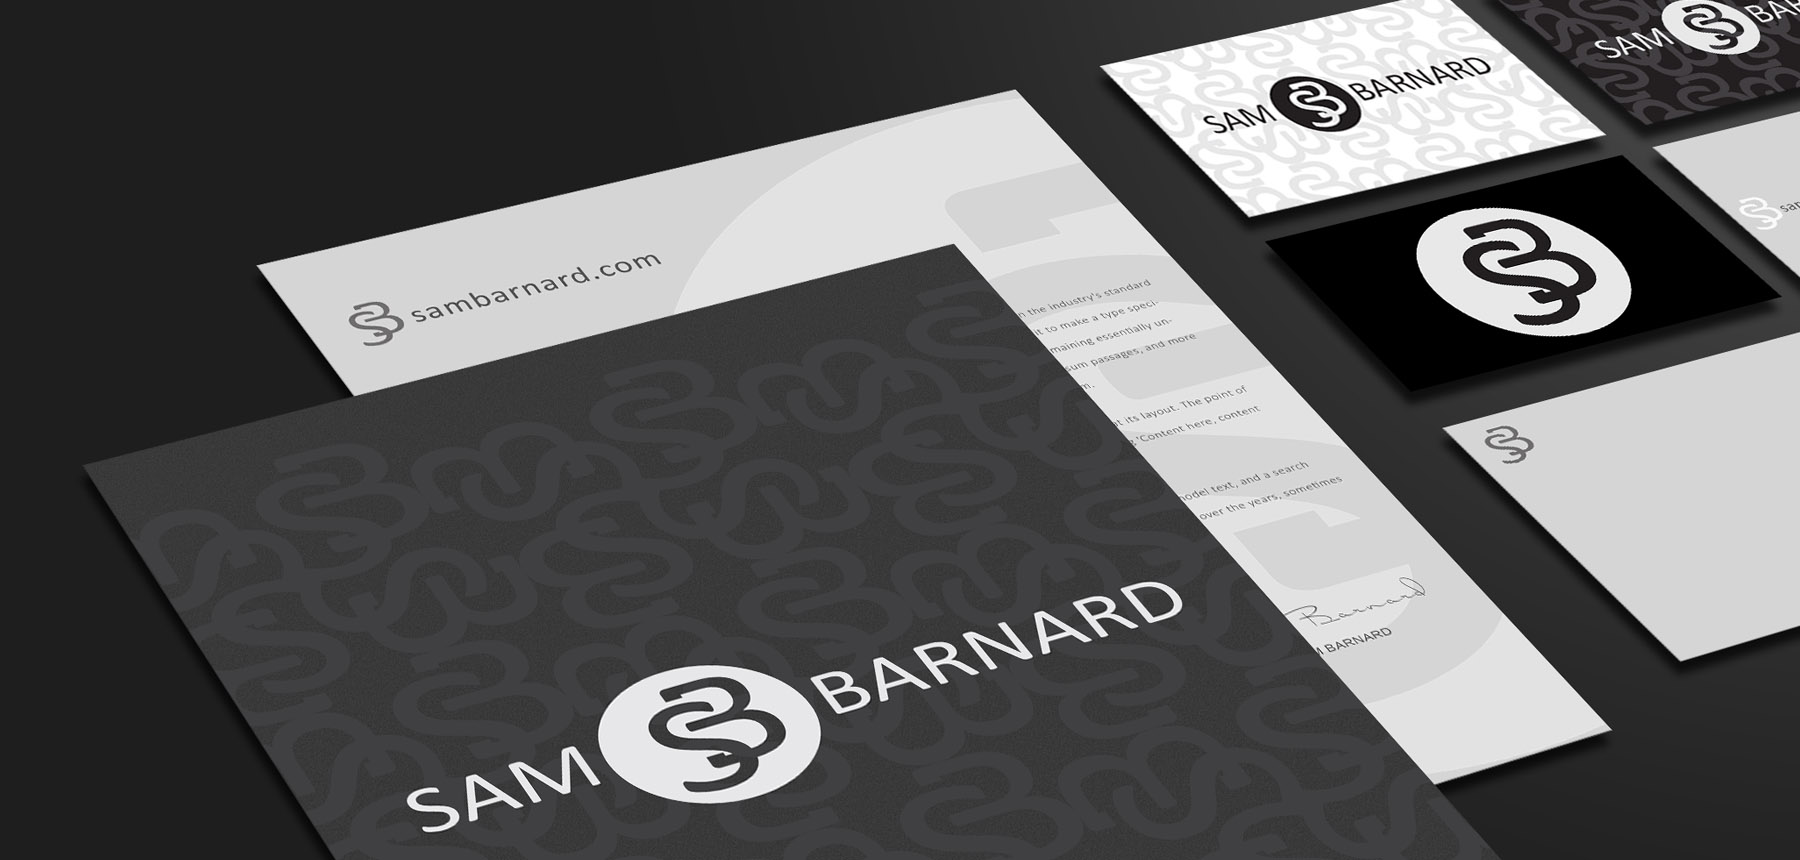 Sam Barnard Branding and Identity Design Project